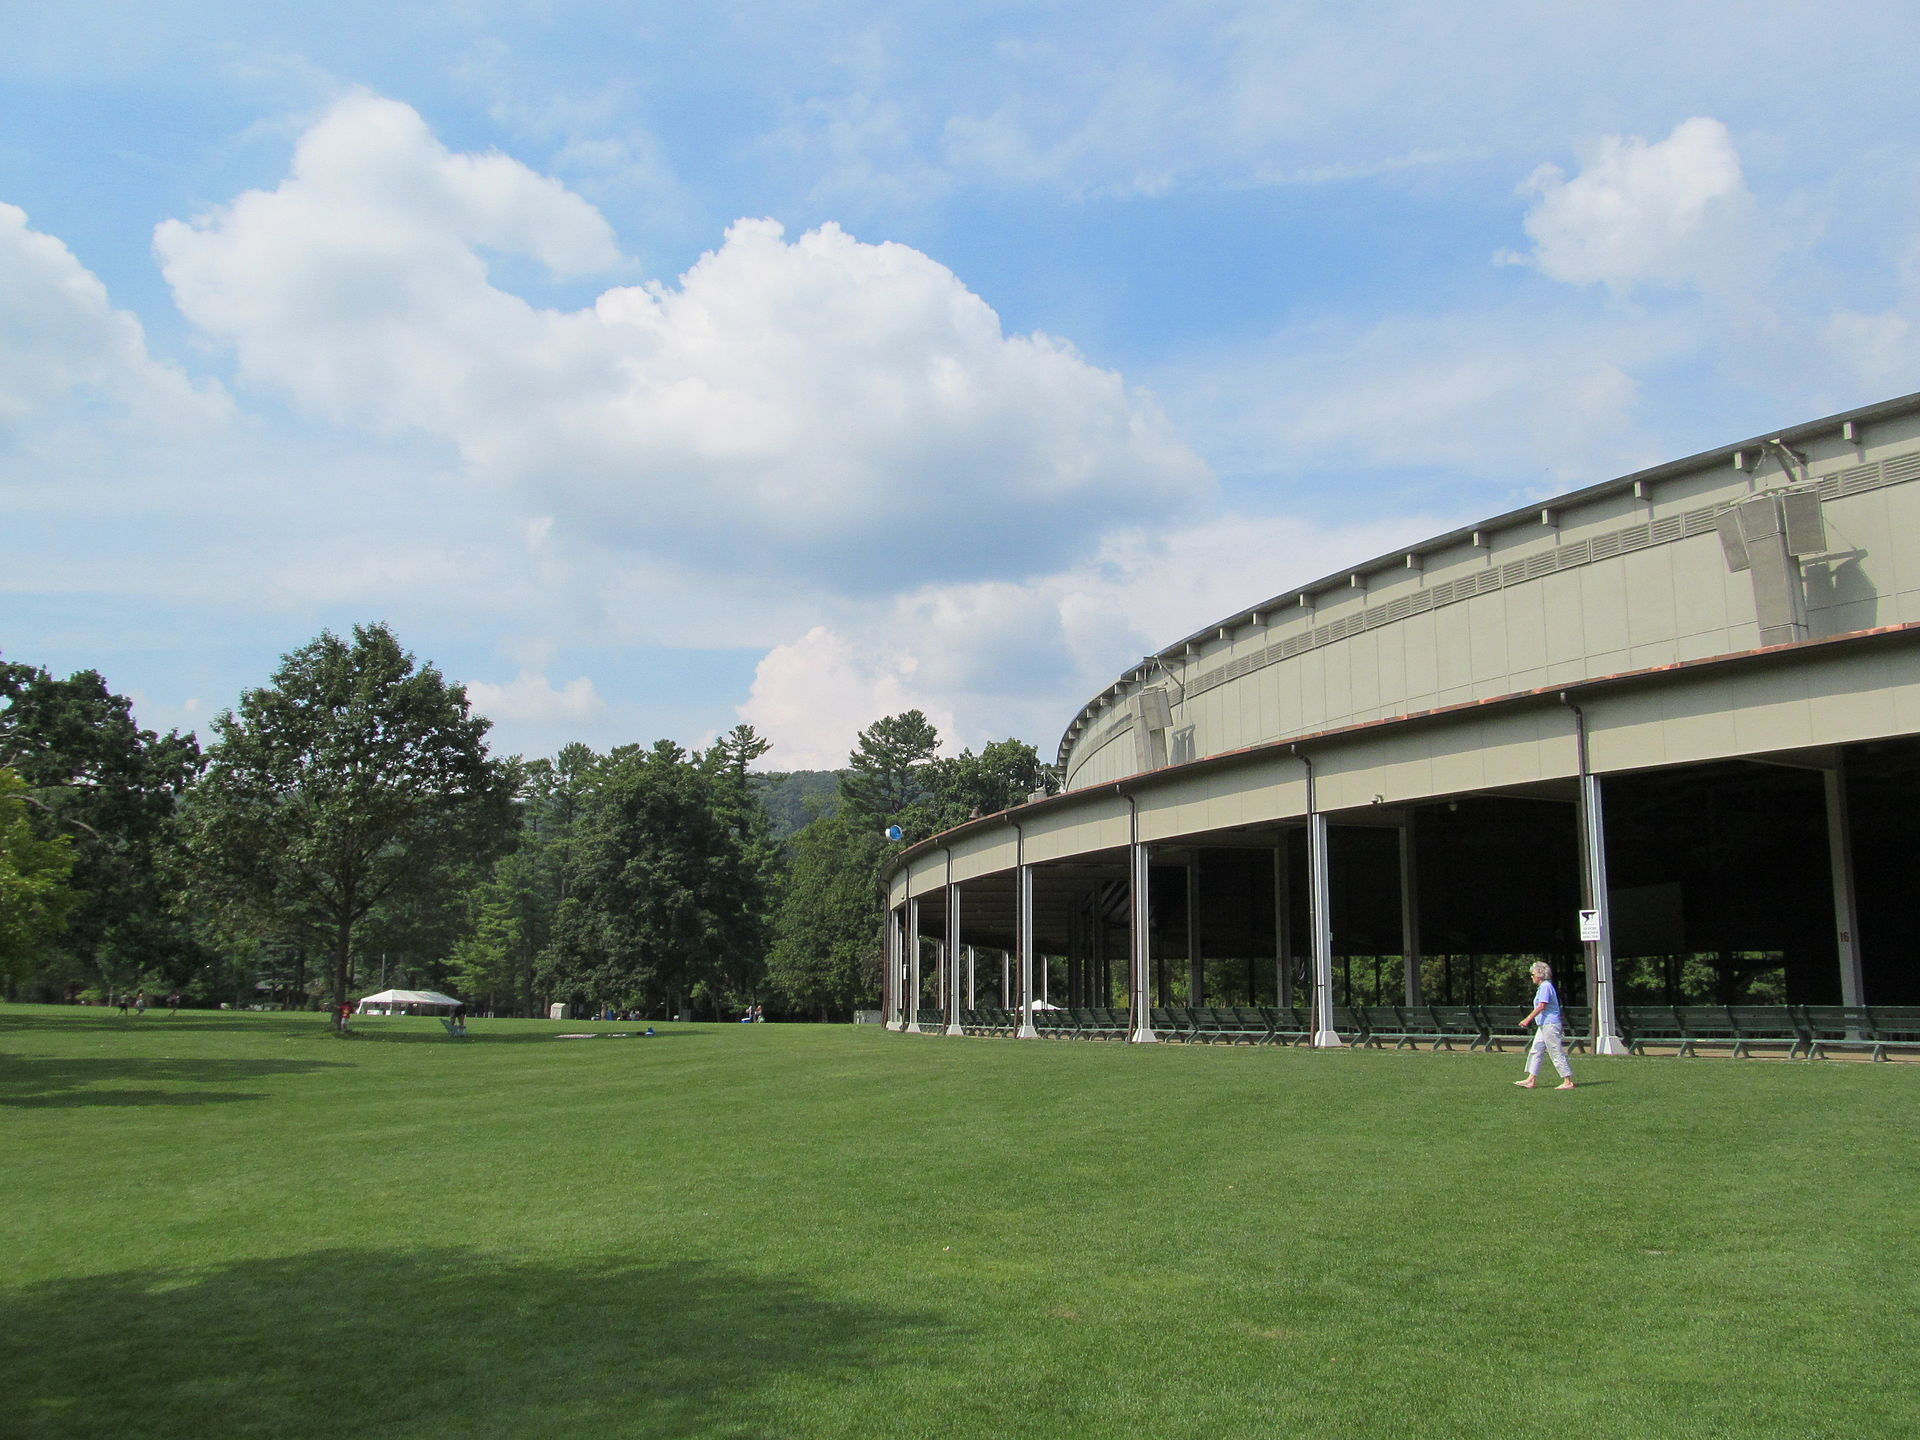 Tanglewood music center wikipedia for The tanglewood